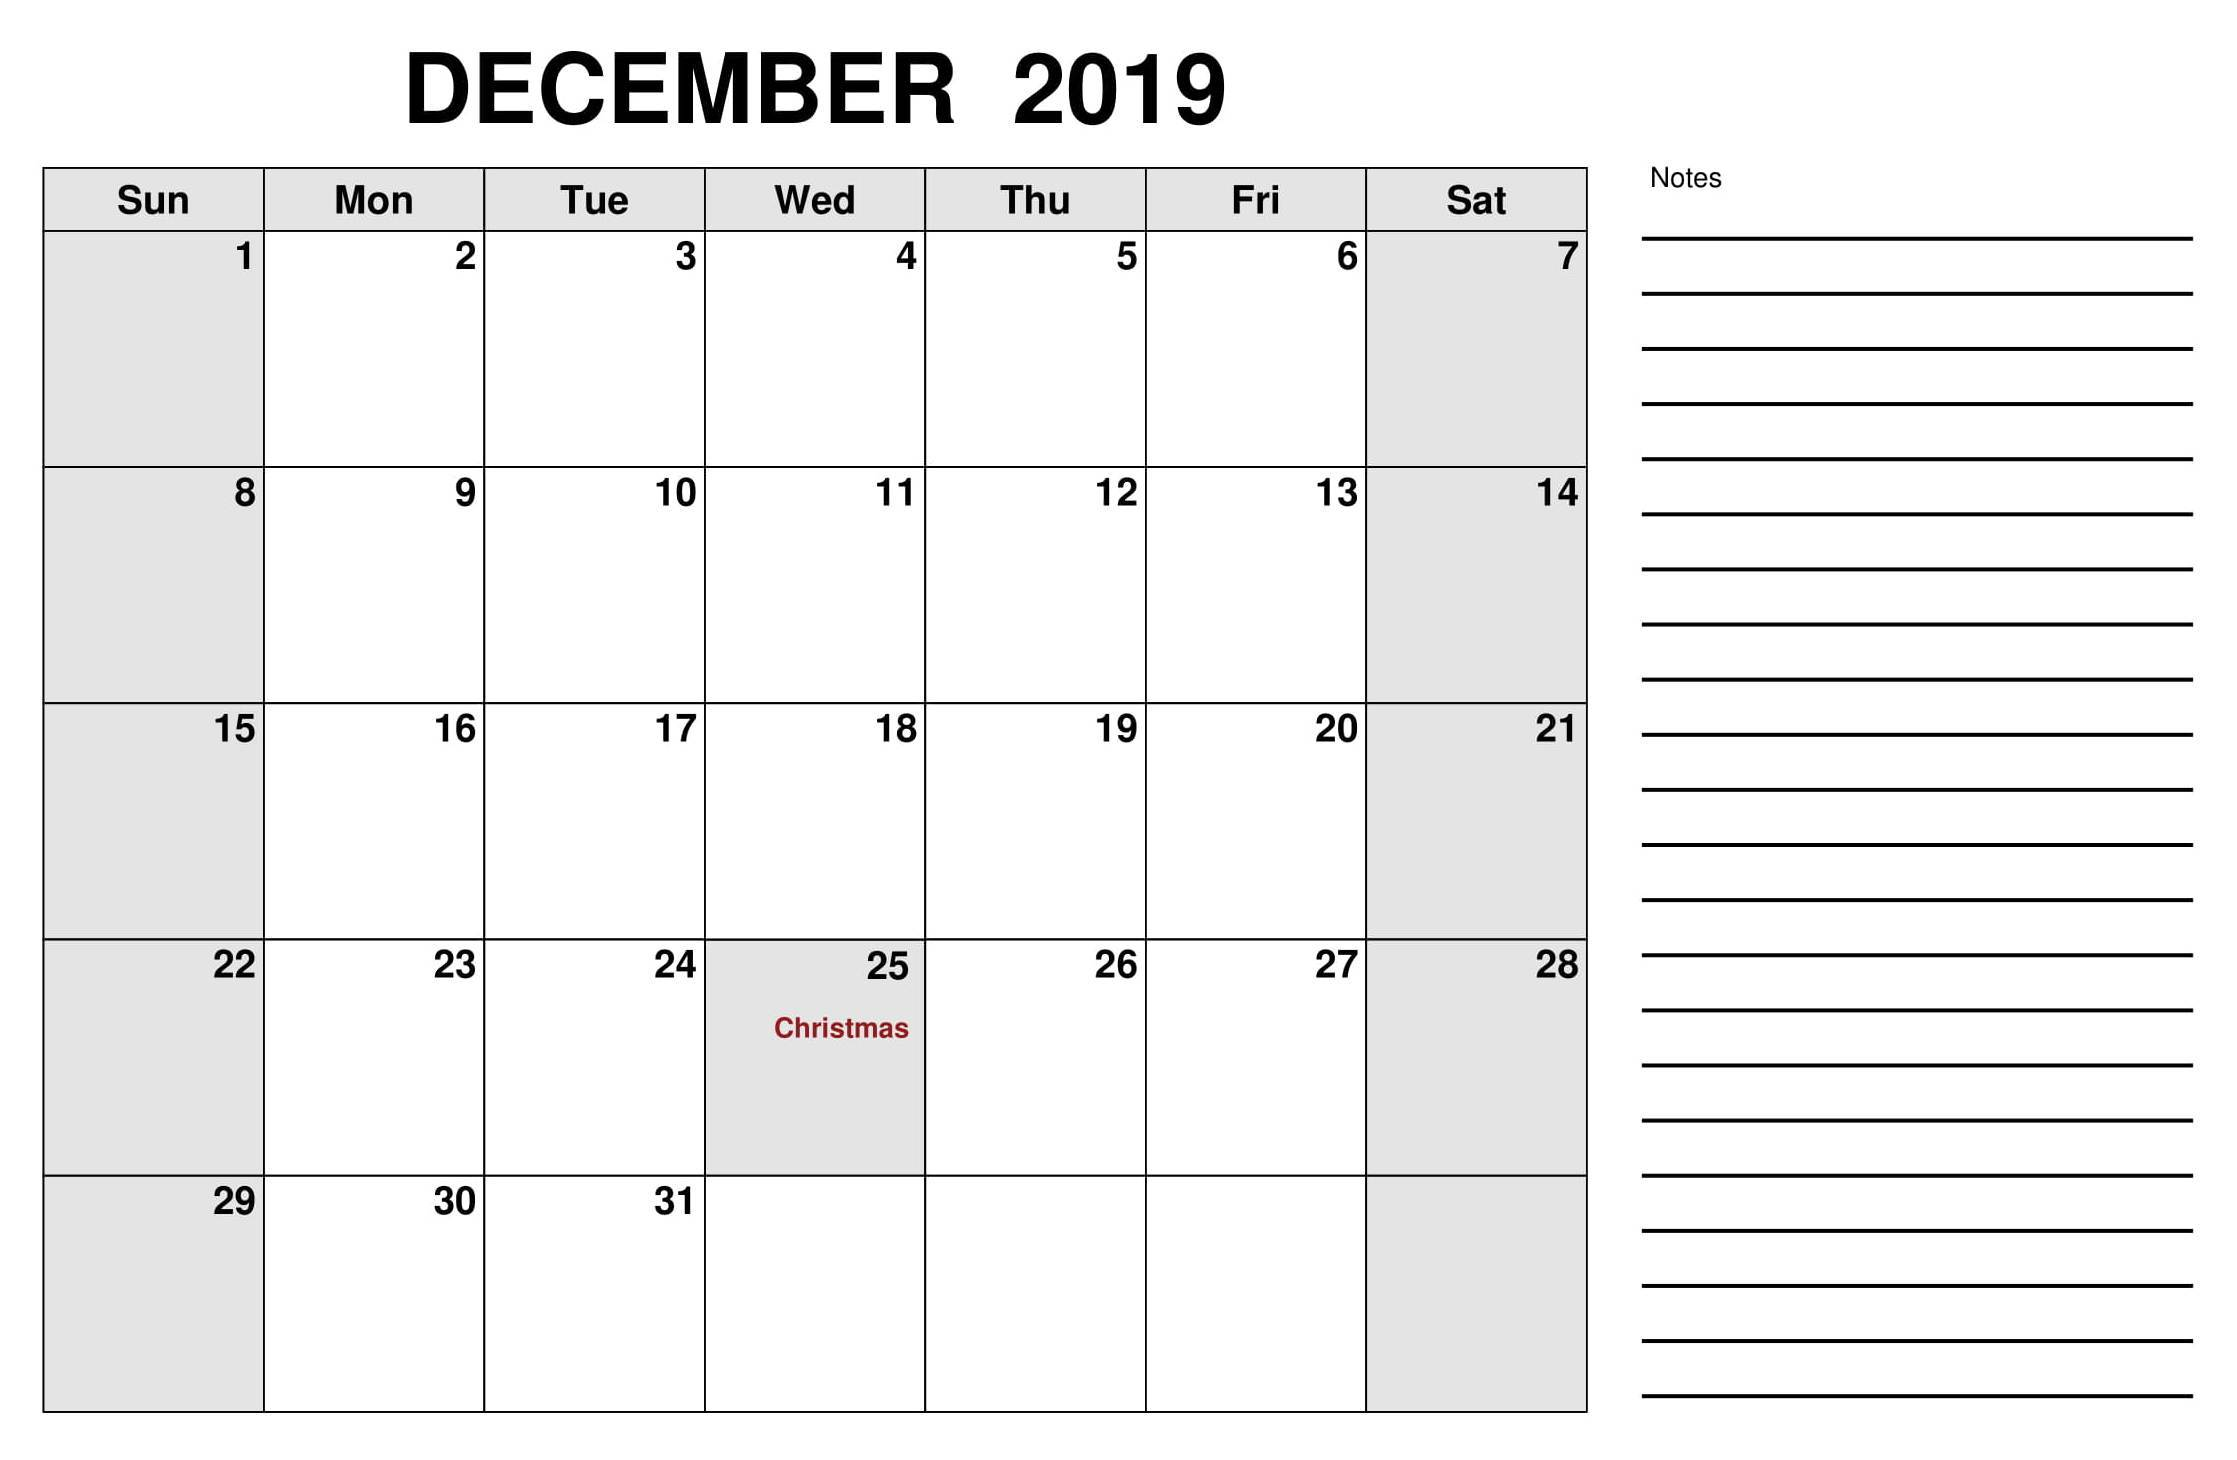 December 2019 US Calendar With Holidays